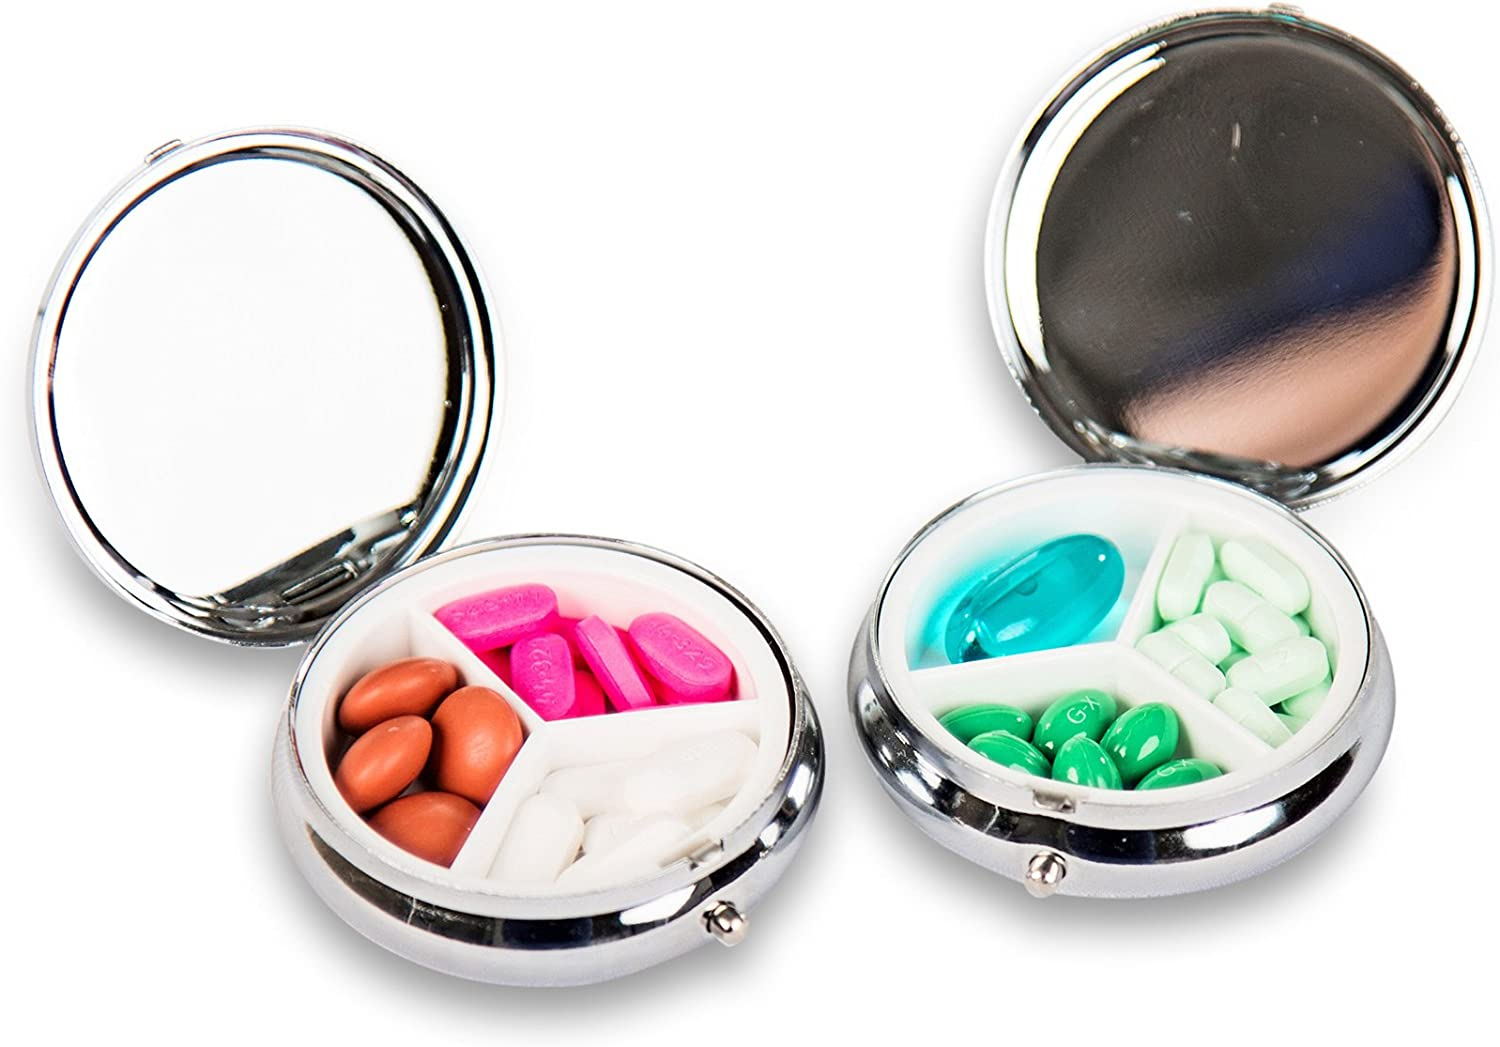 Square Pill box White 4065 Pill Case for purse Words of Wisdom 4 Sections Black Inspiration Pill case Learn Live Hope Pill box